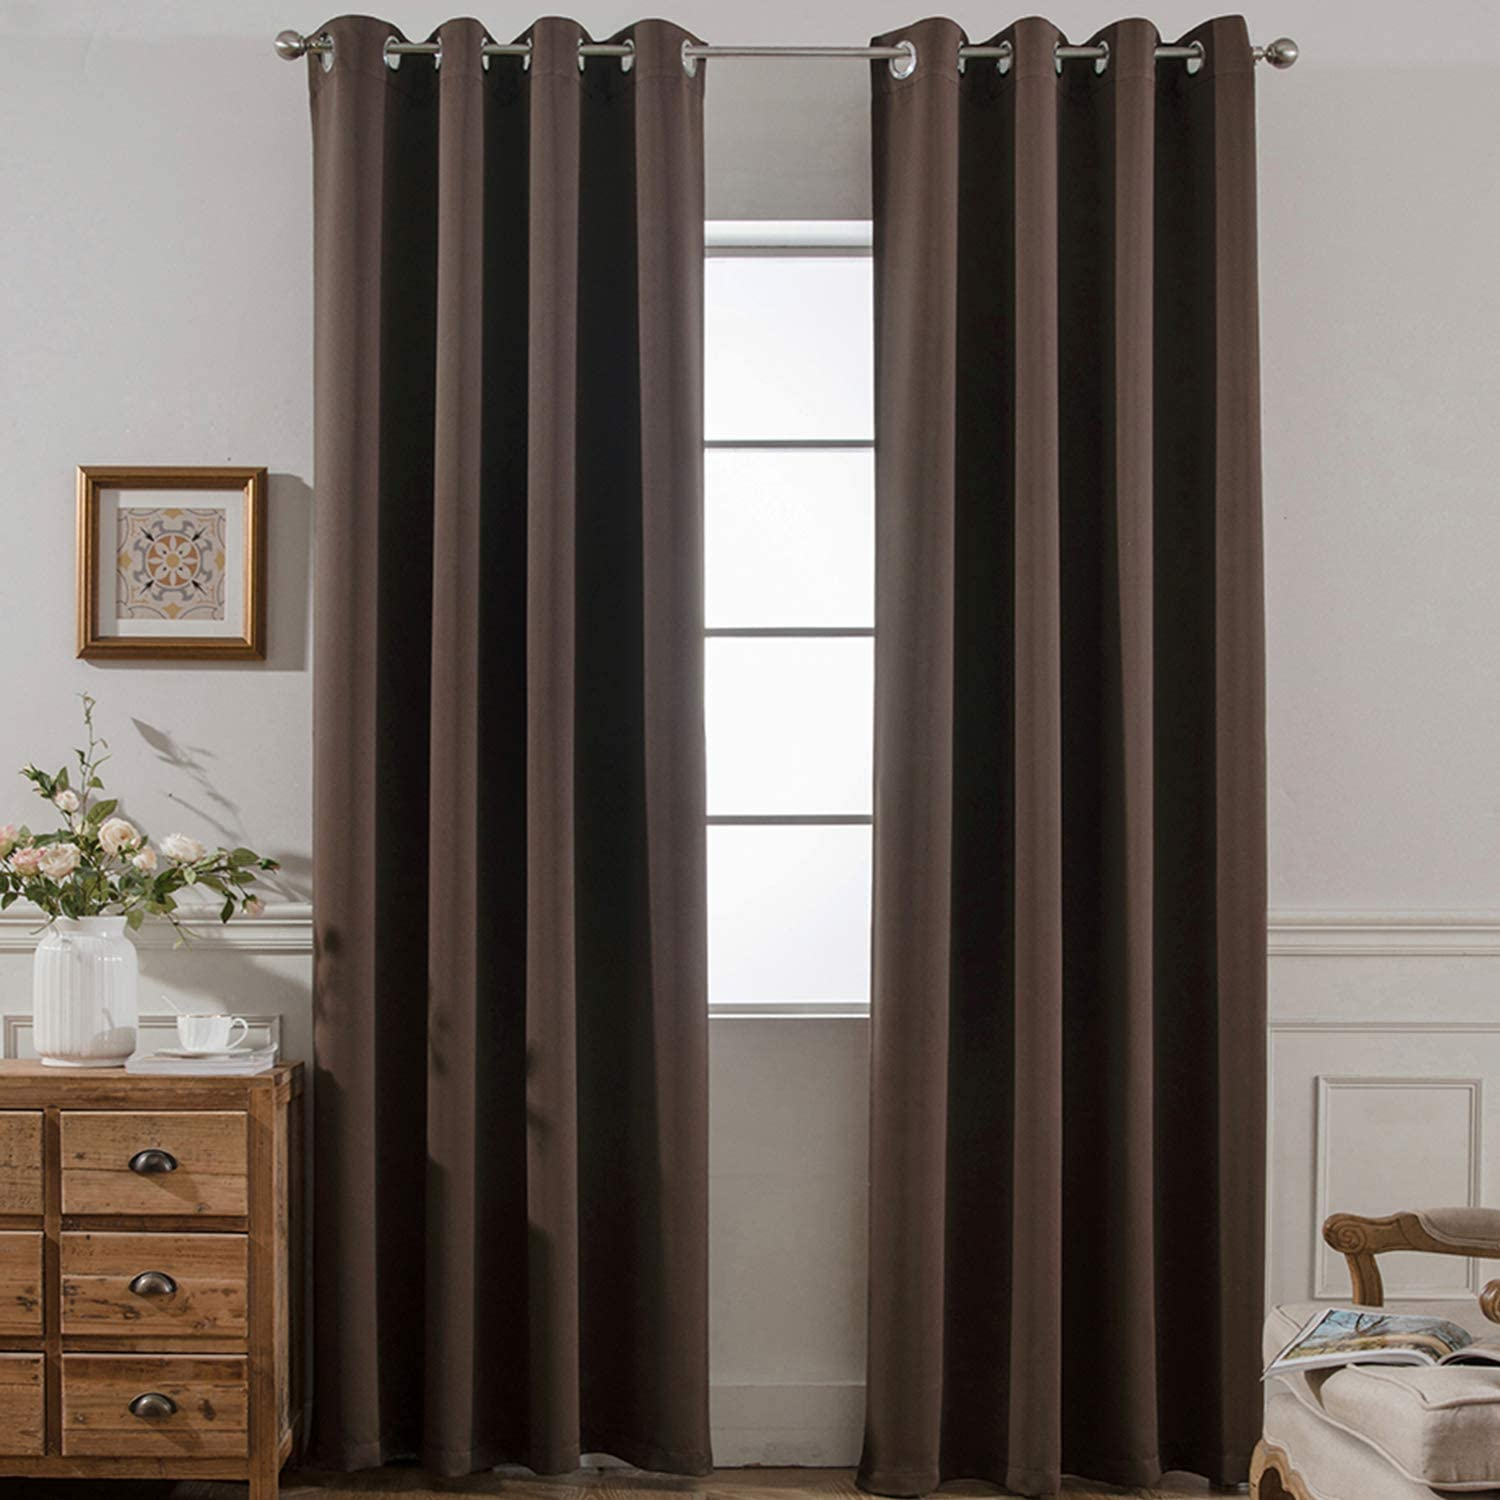 Yakamok Blackout Room Darkening Insulated Grommet Panels Window Curtains with 2 Tie Backs (Set of 2, Chocolate Brown, 52 x 96 Inch)